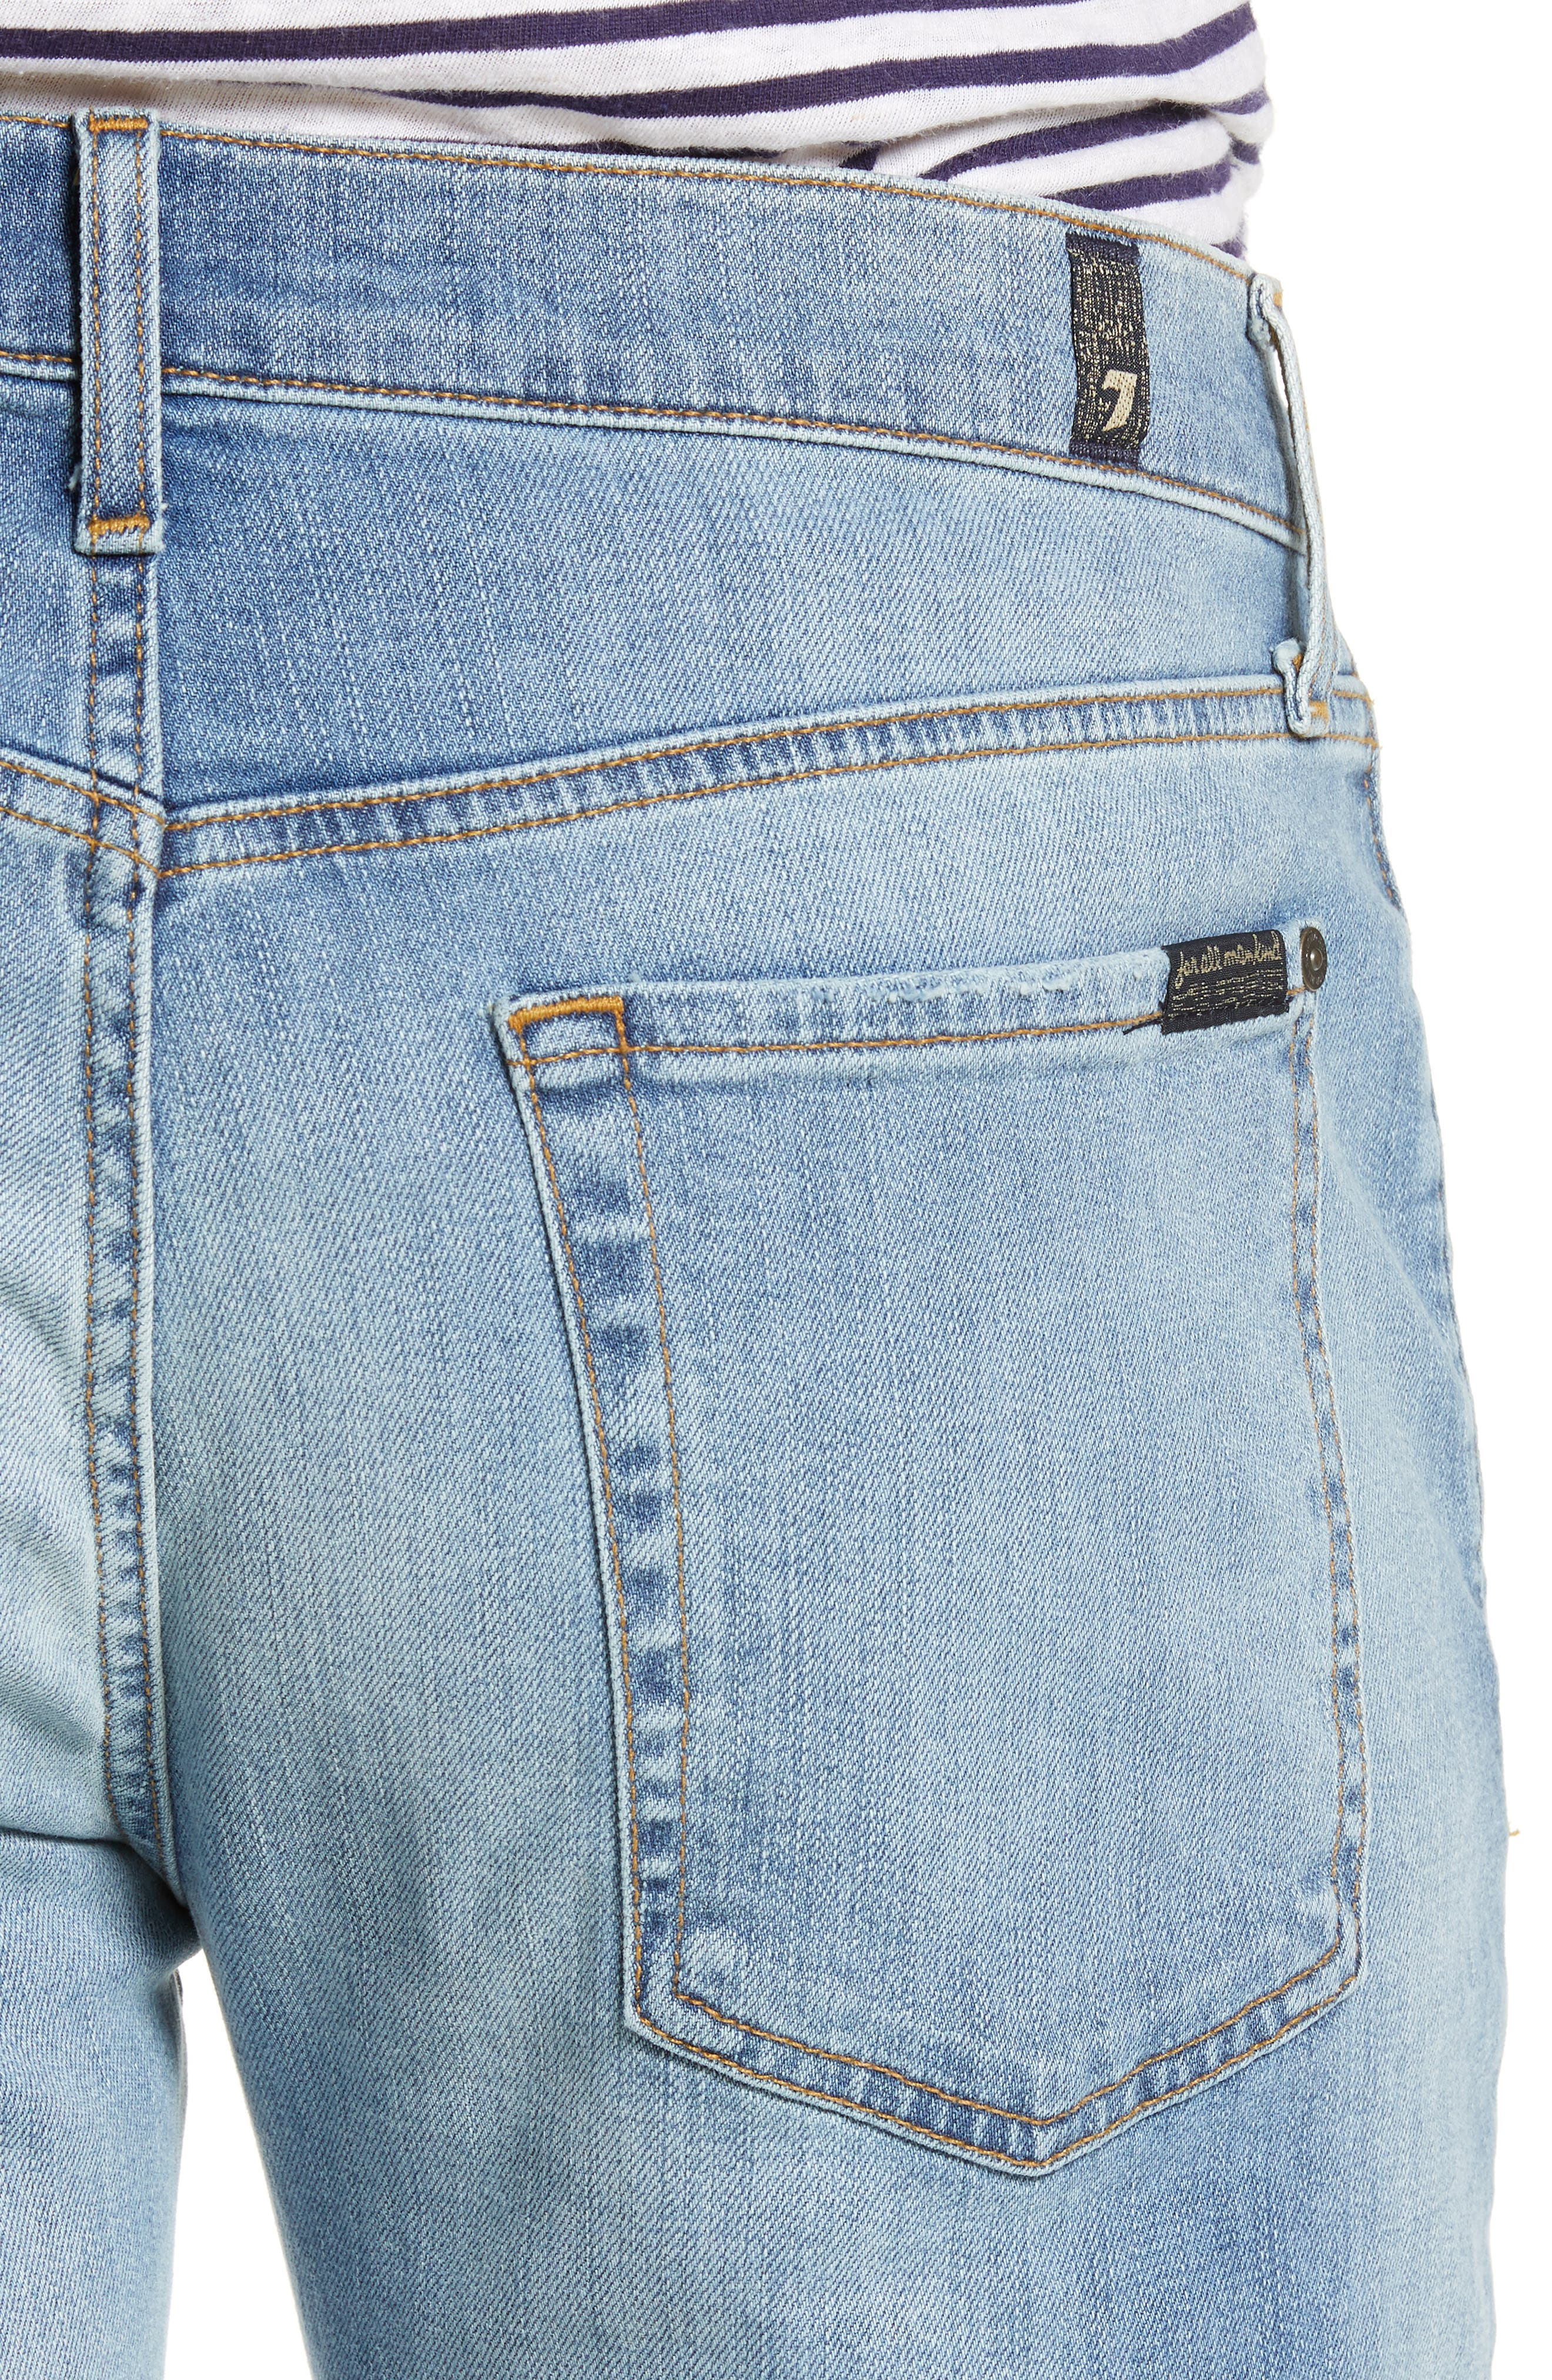 7 FOR ALL MANKIND<SUP>®</SUP>, Adrien Luxe Performance Slim Fit Jeans, Alternate thumbnail 5, color, ZEITGEIST